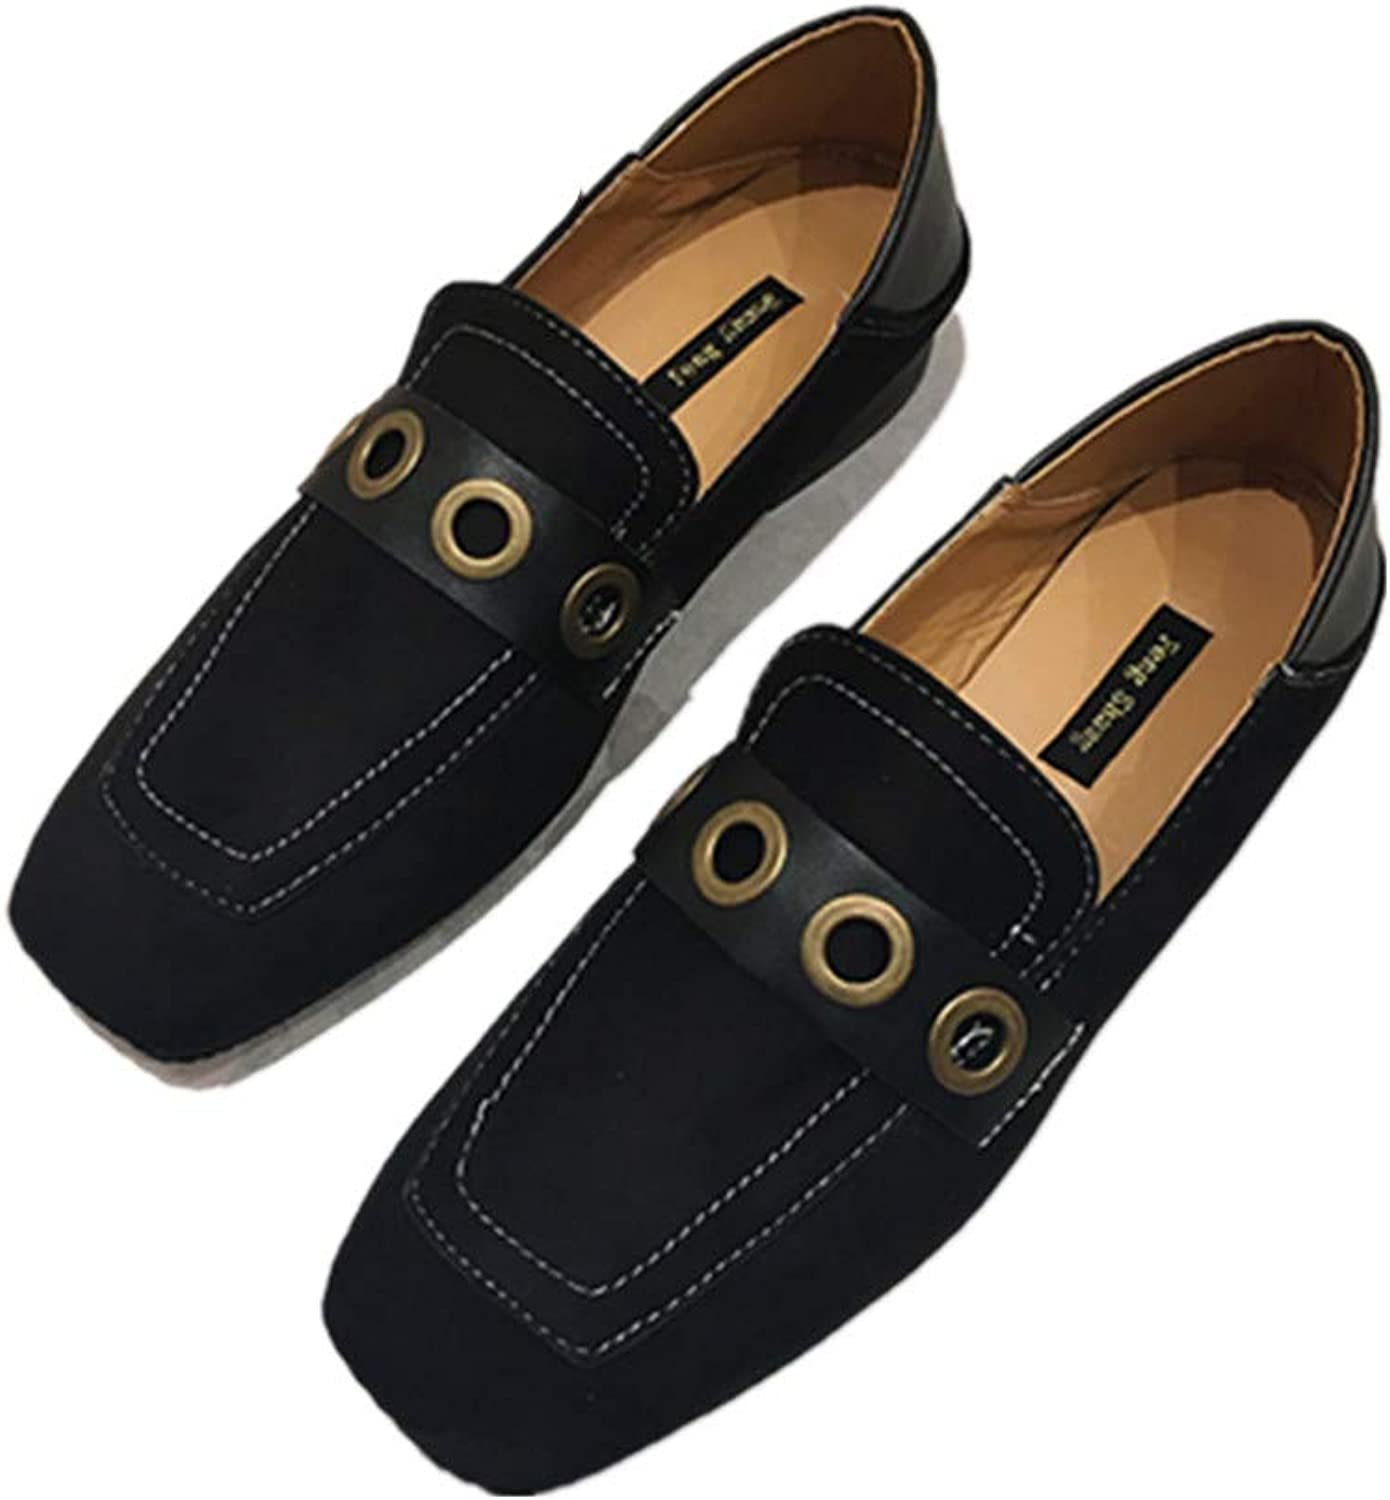 Meimeioo Flats shoes for Women- Comfortable Loafers Casual Walking Slip On Ladies shoes